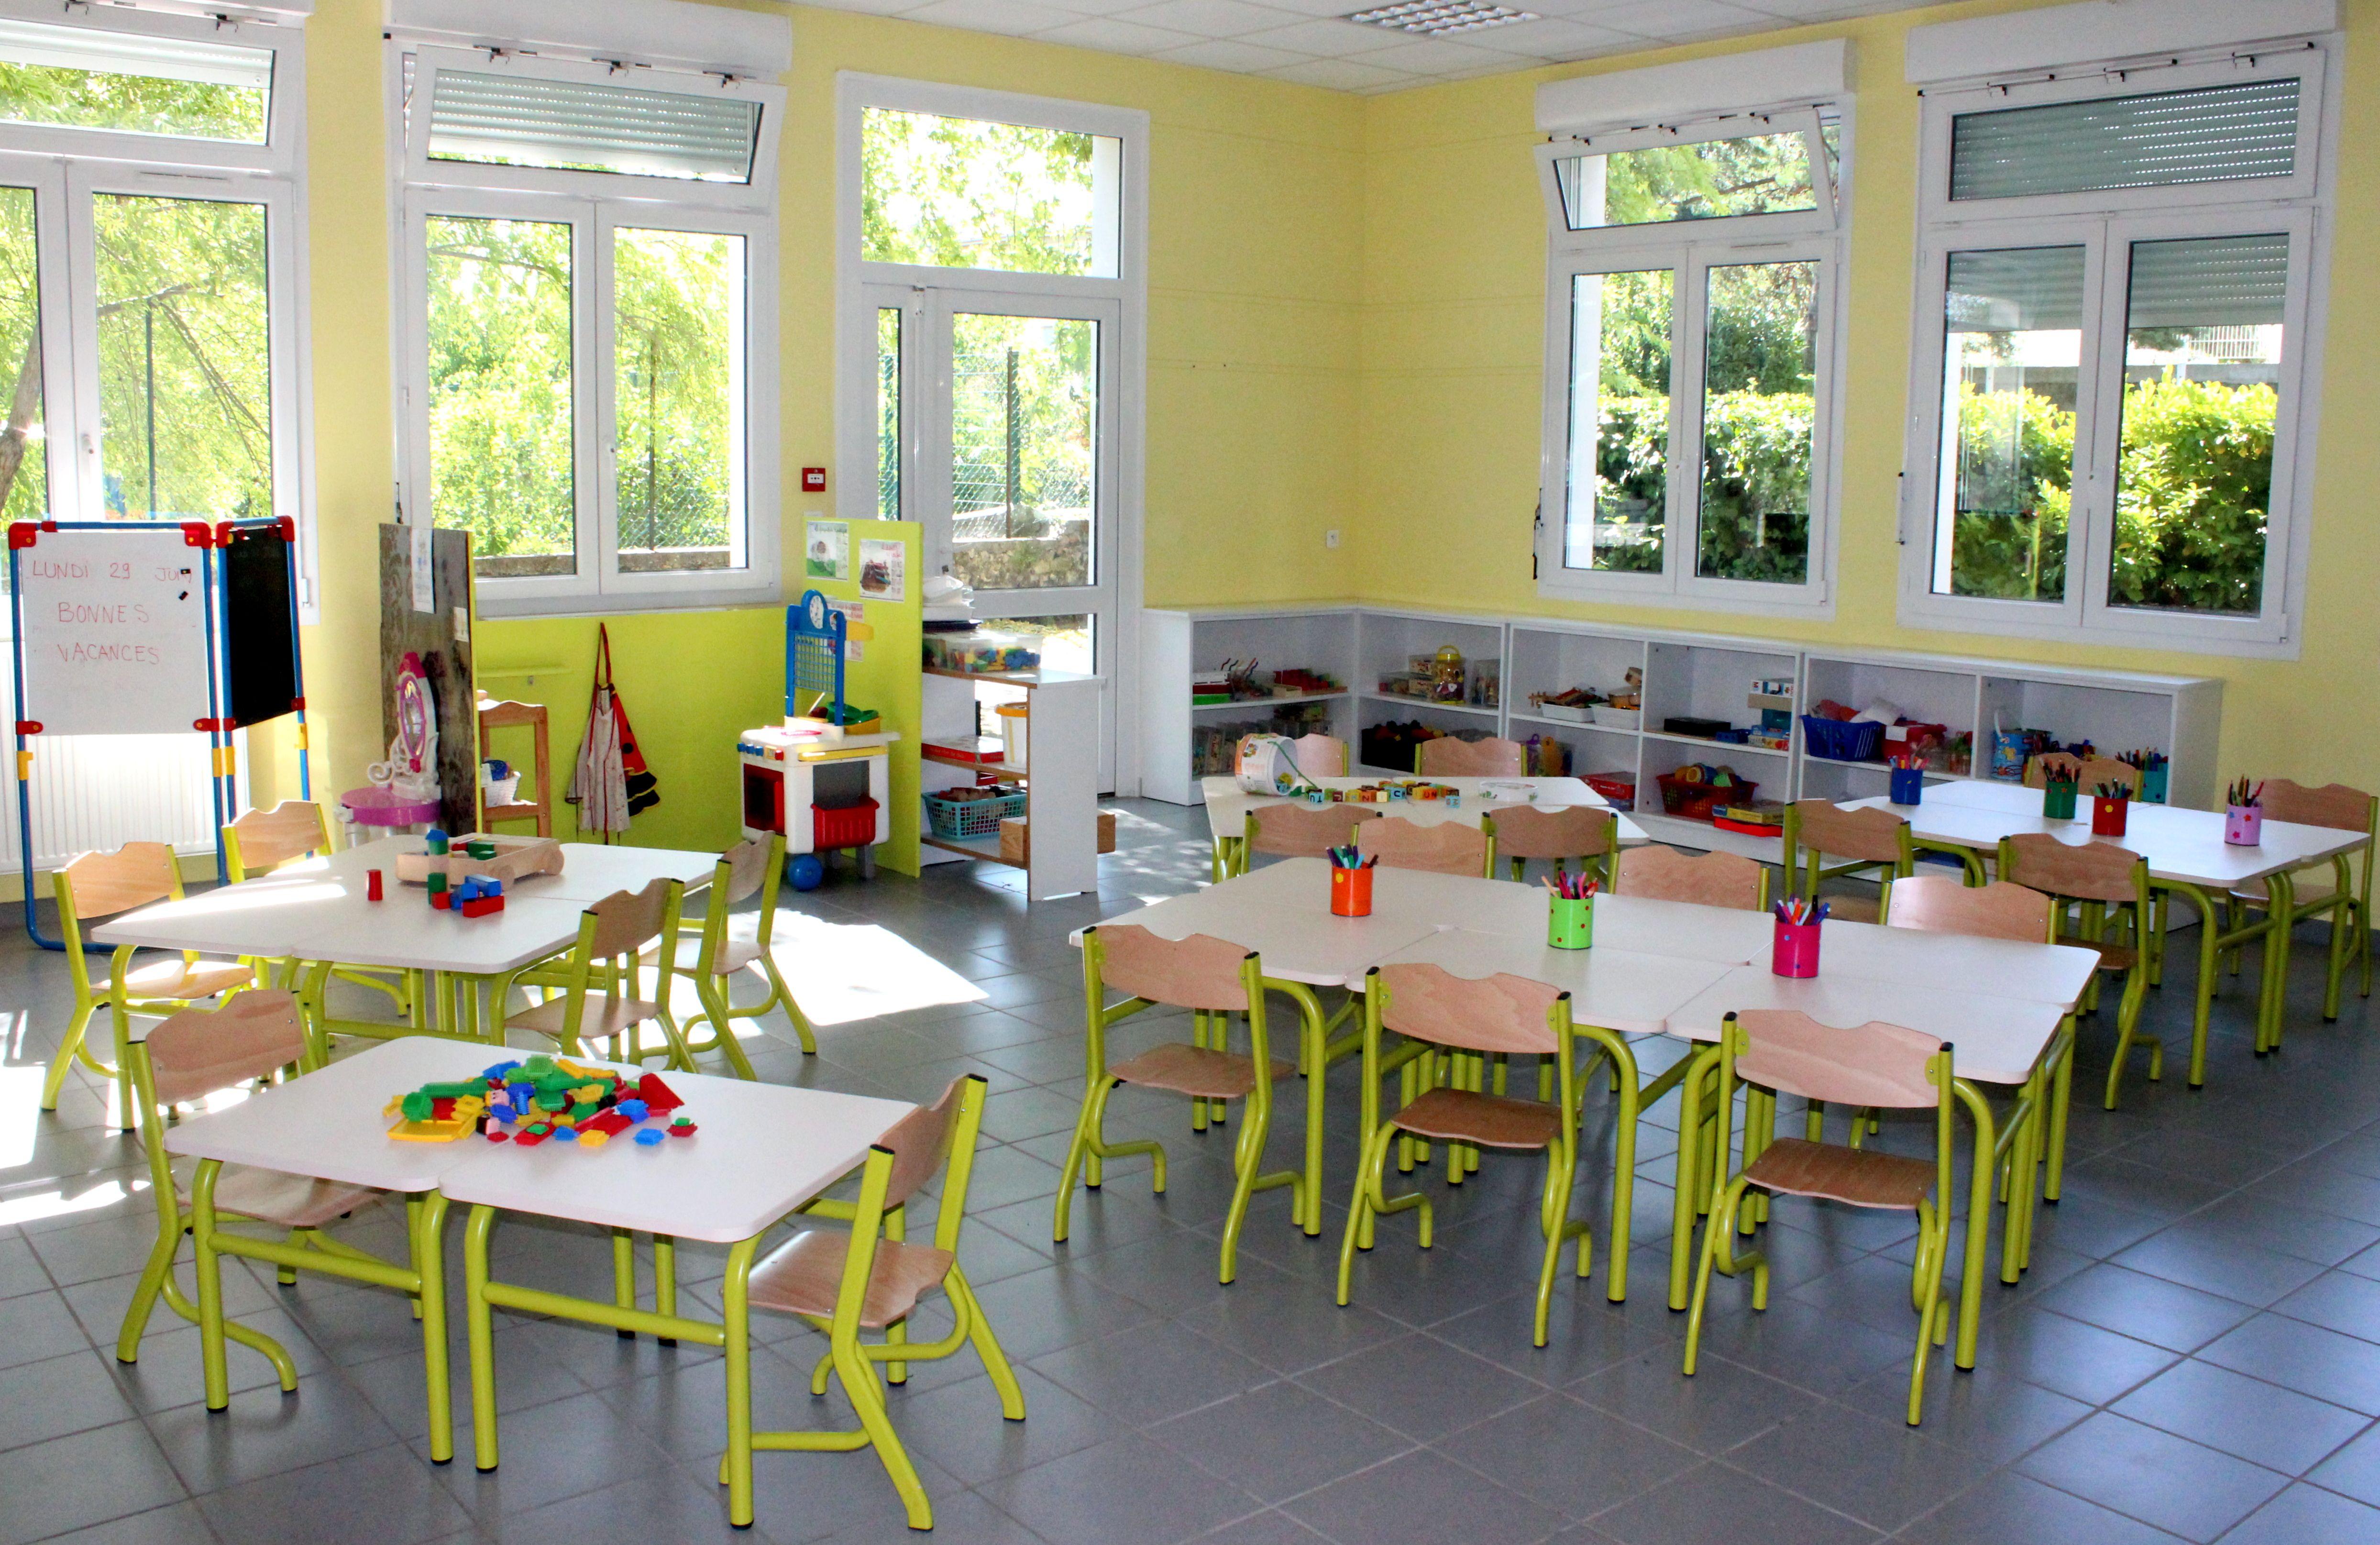 Ambiance Classe Maternelle Abcd Salle Chaises Tim De Tables v80nNmw